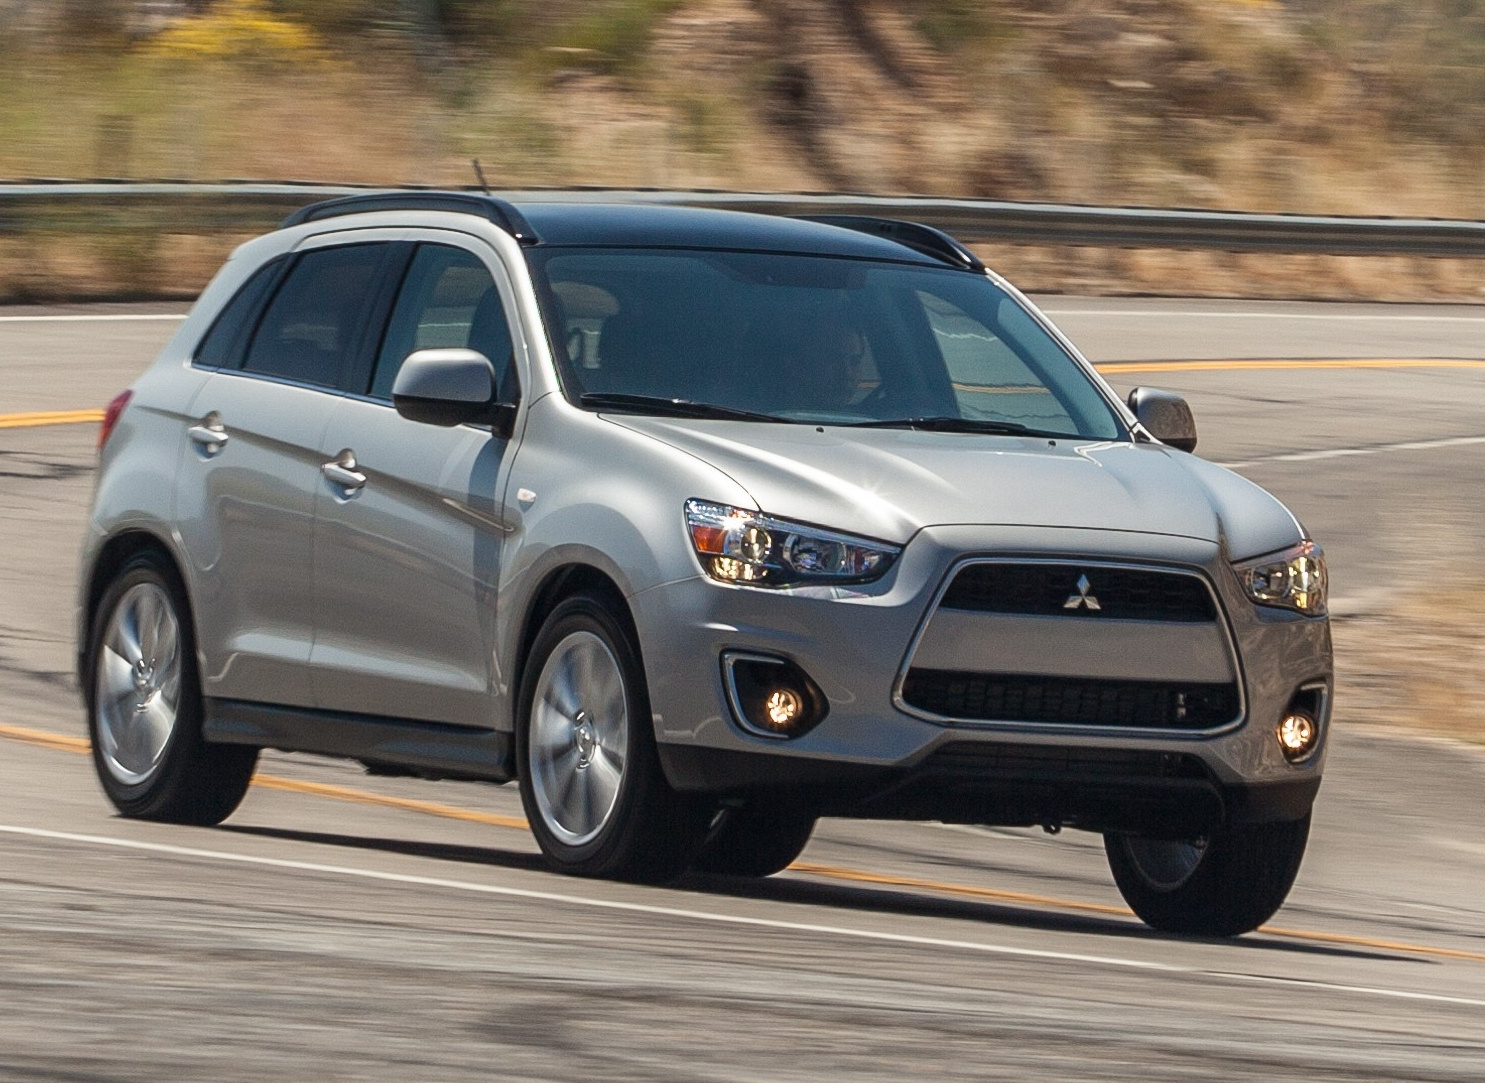 2014 mitsubishi outlander sport overview cargurus - Mitsubishi Outlander Sport 2014 Black